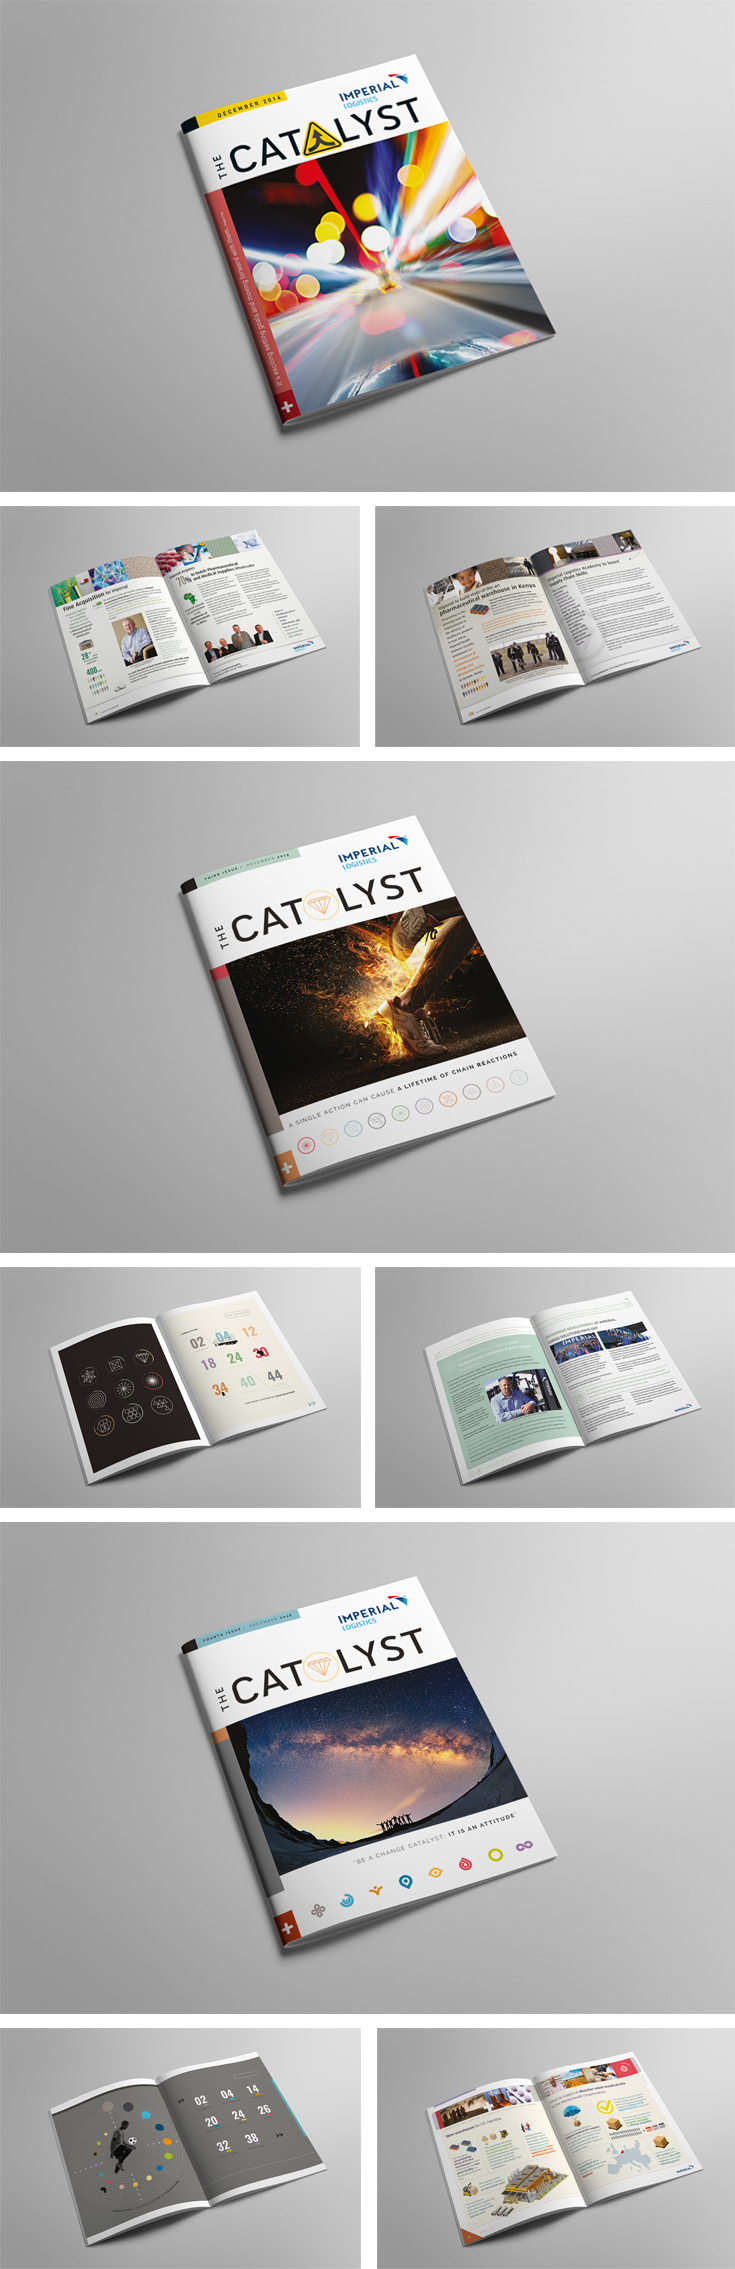 catalyst pinterest